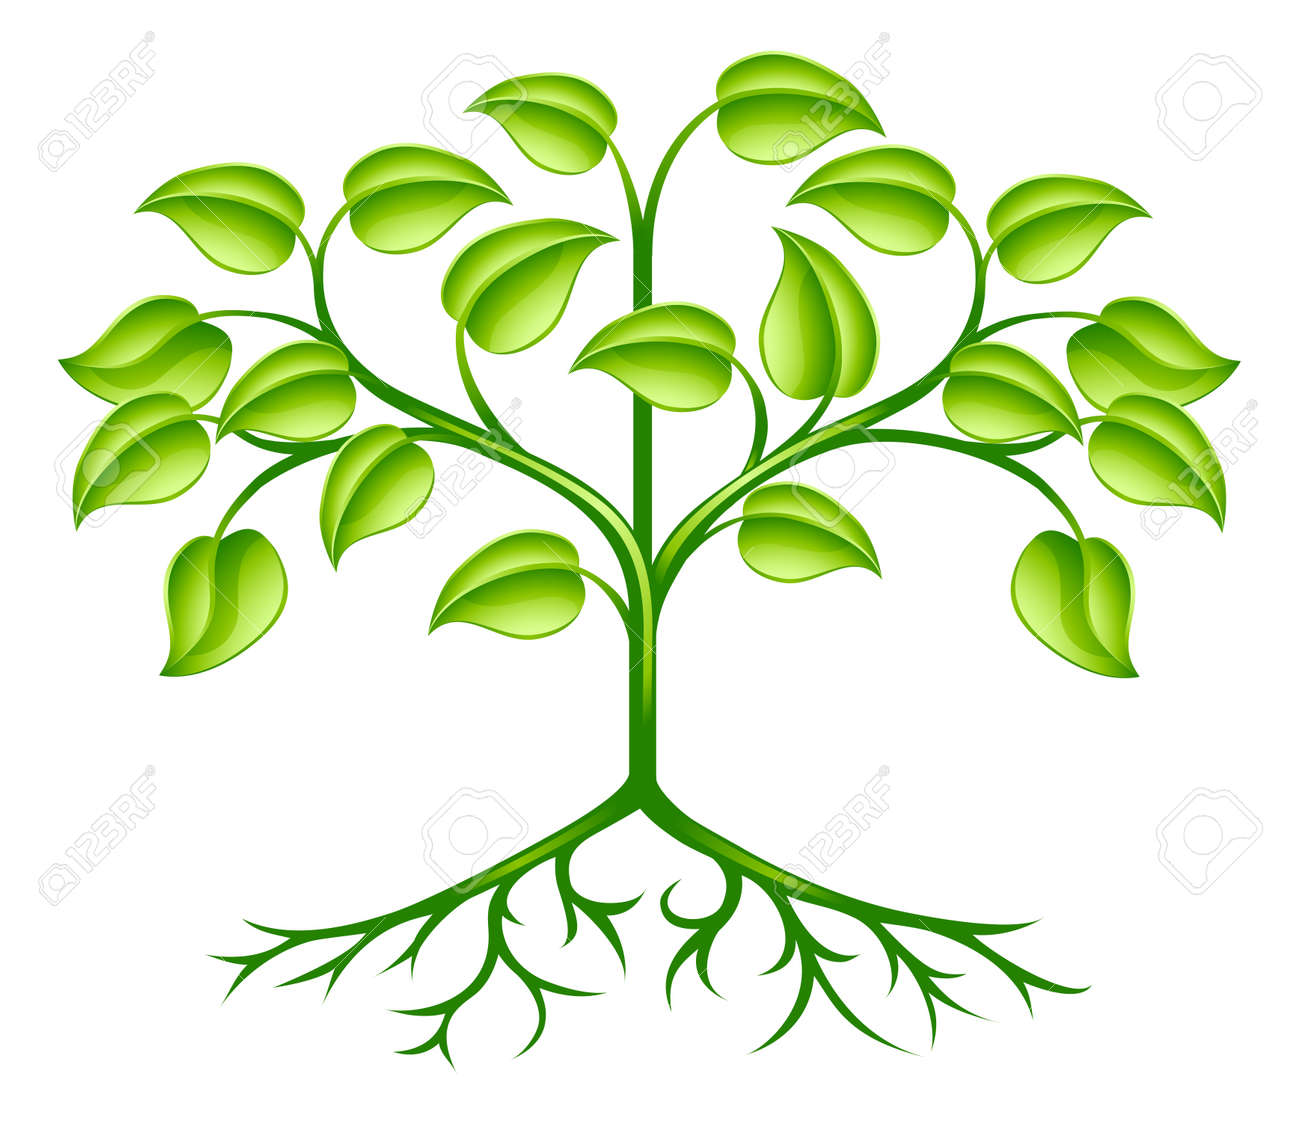 A green stylised tree design element symbolising growth, nature or the environment Stock Vector - 13271266